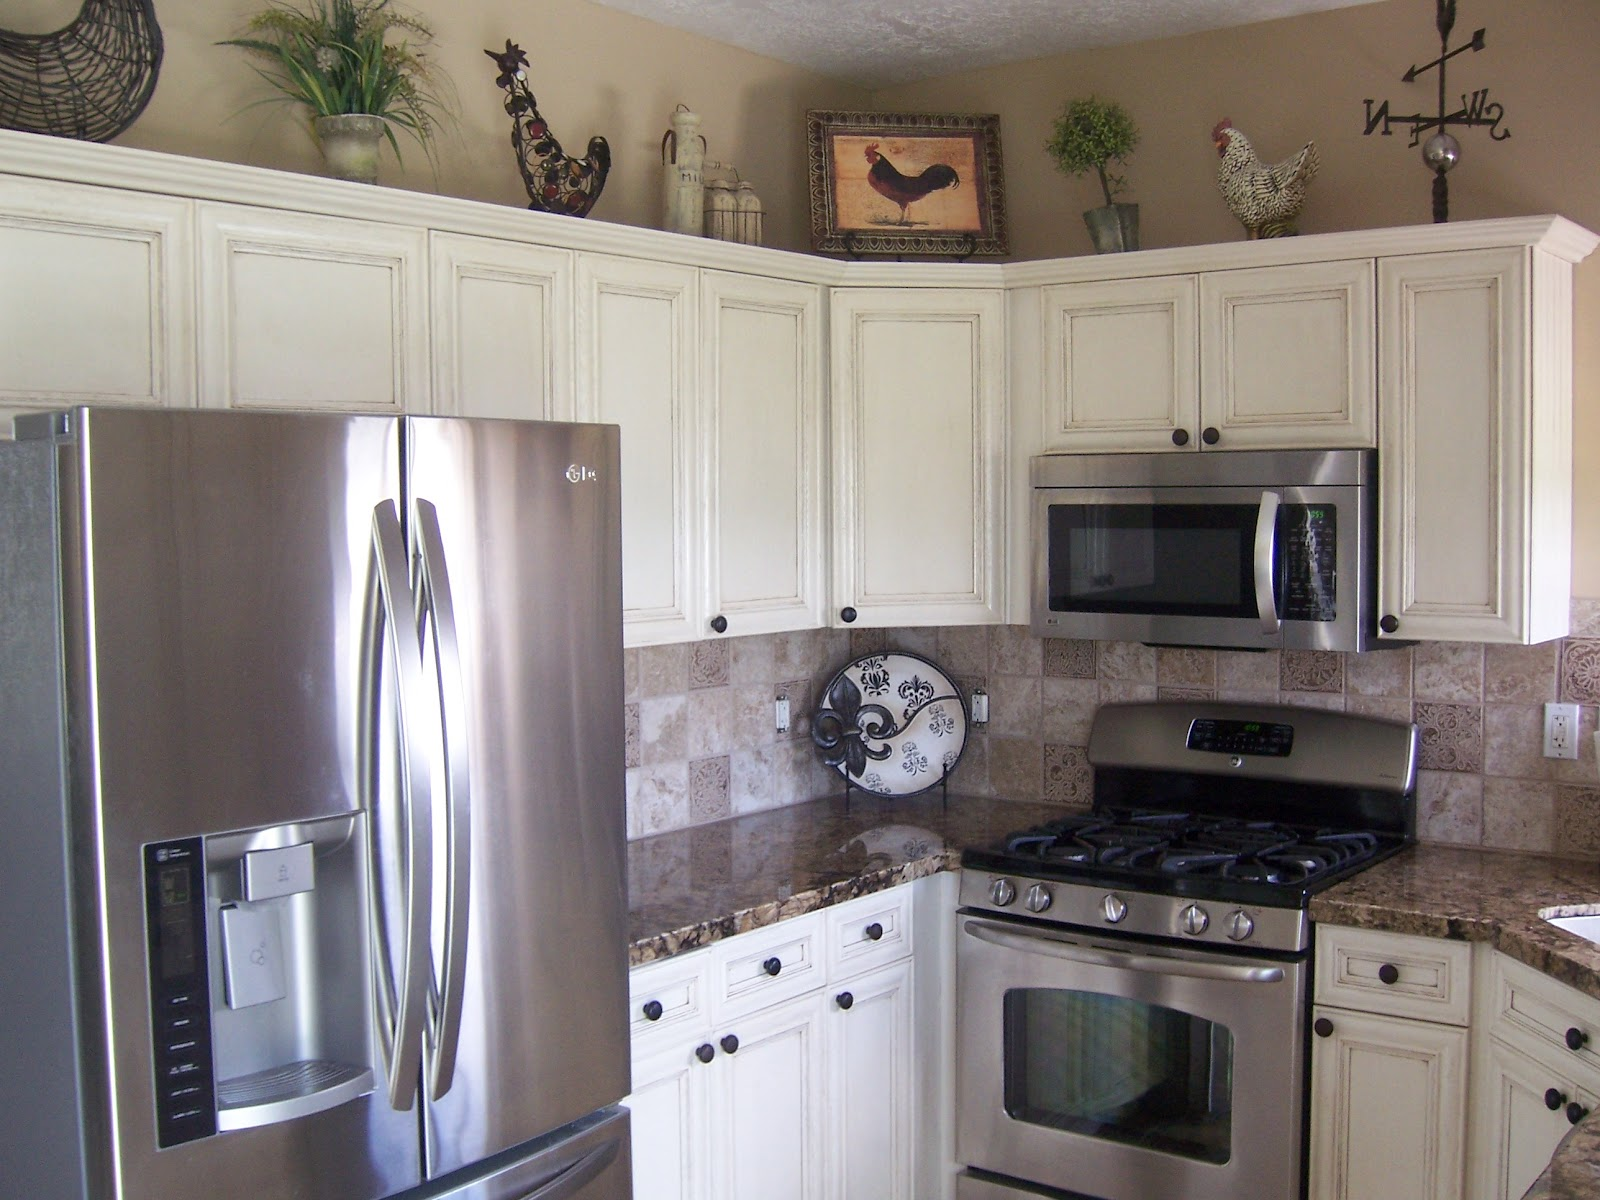 ... Design White Cabinets Stainless Appliances White Appliances. Kitchen ...